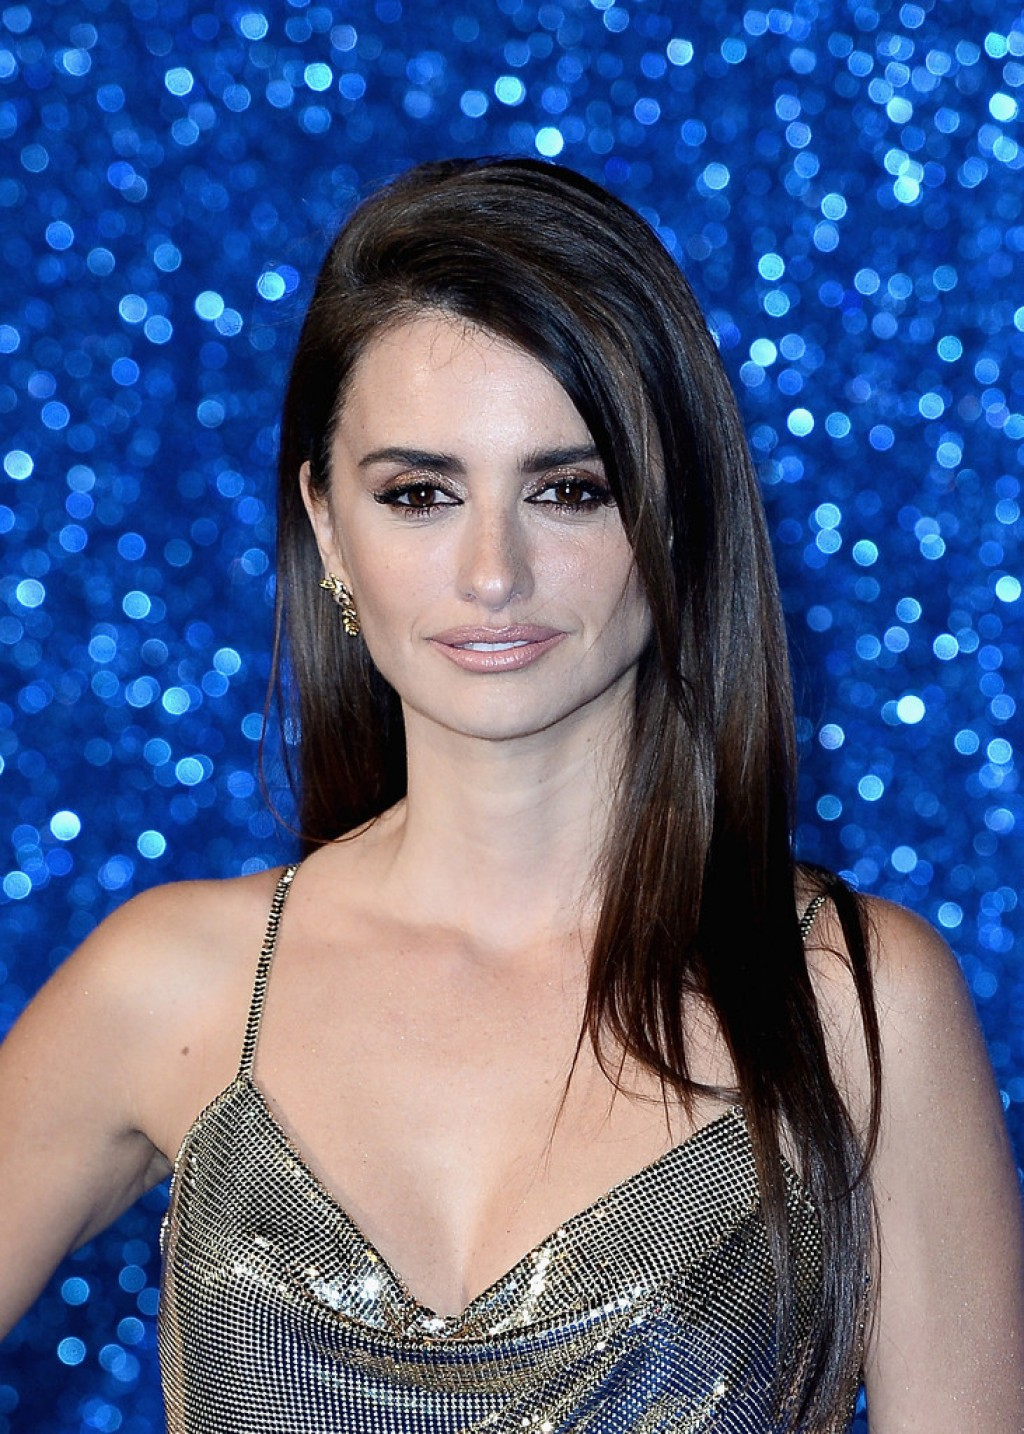 Zoolander-2-London-Premiere-Penelope-Cruz-Makeup-1024x1434